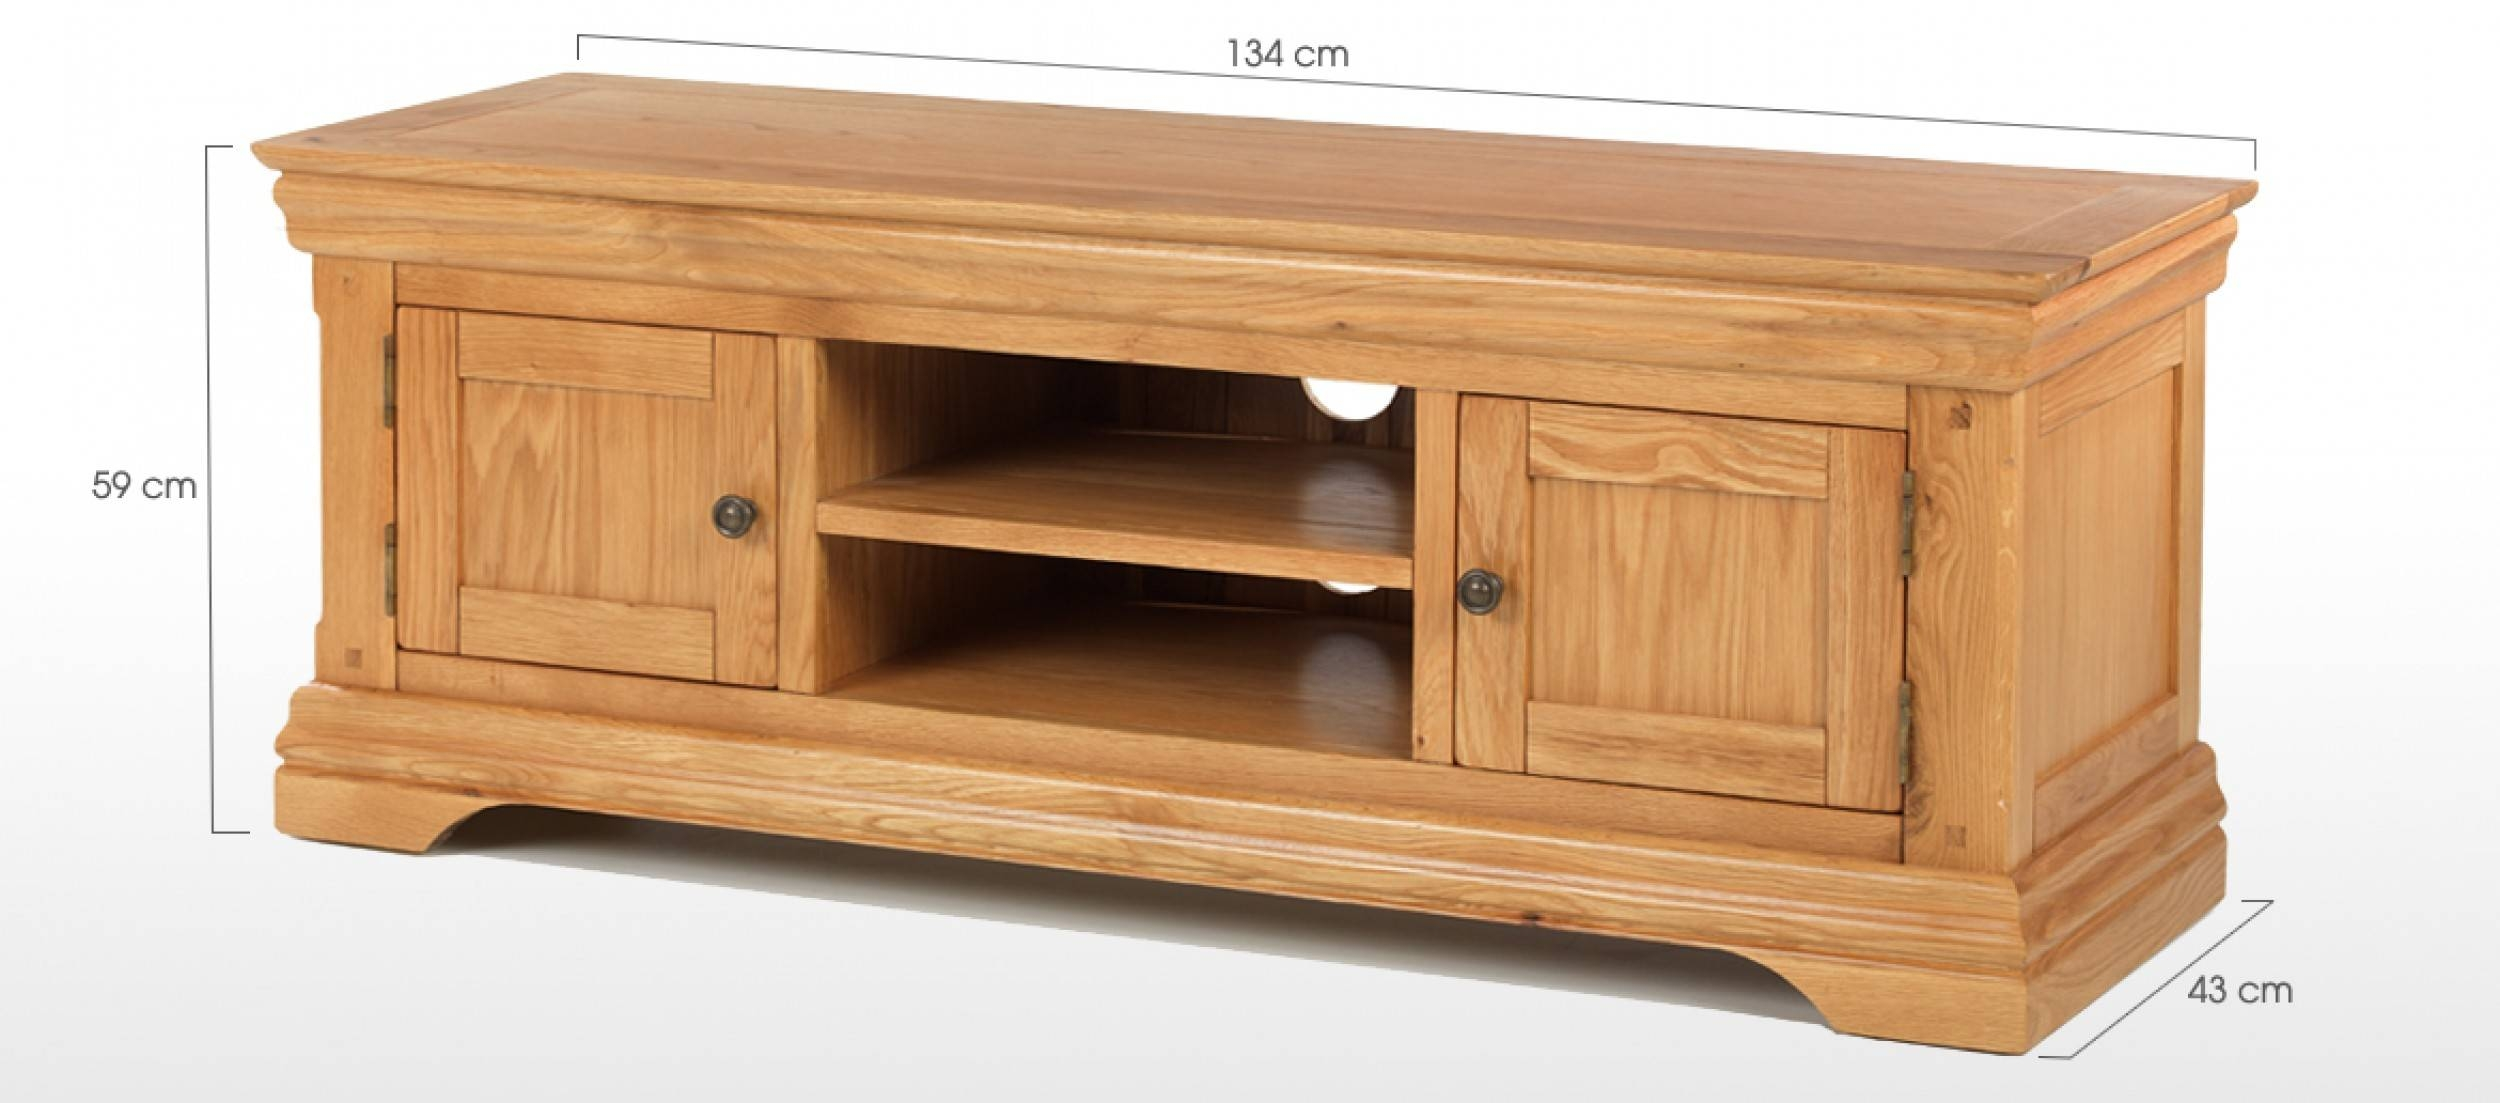 Constance Oak Plasma Tv Stand | Quercus Living With Regard To Tv Stands In Oak (View 9 of 15)